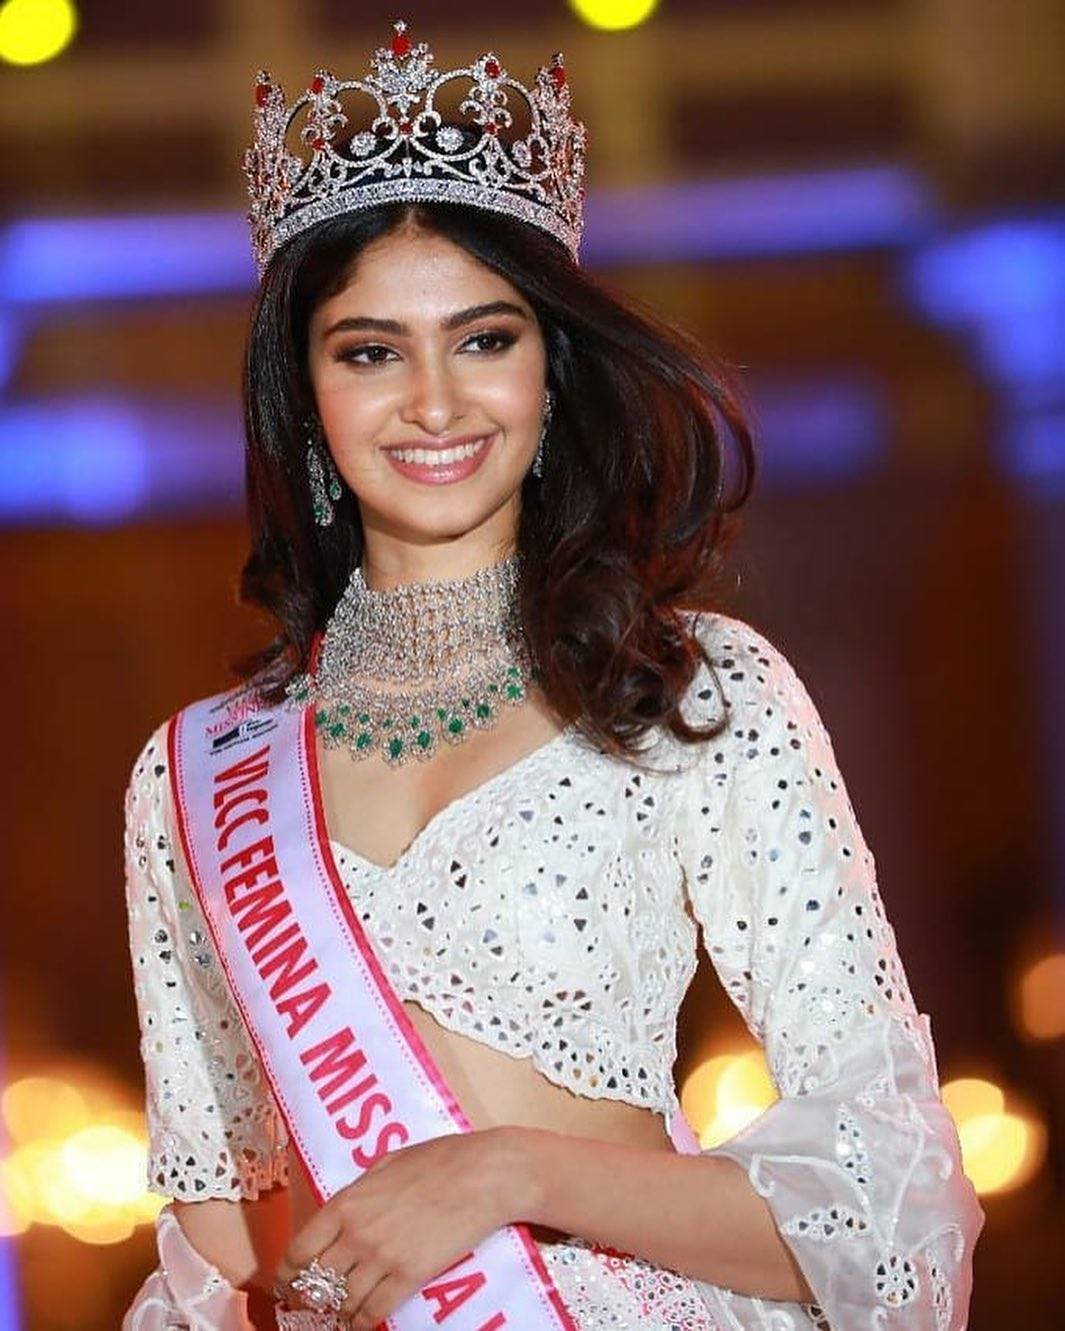 VLCC Femina Miss India World 2020 Manasa Varanasi recognized and awarded at FIWA 2021